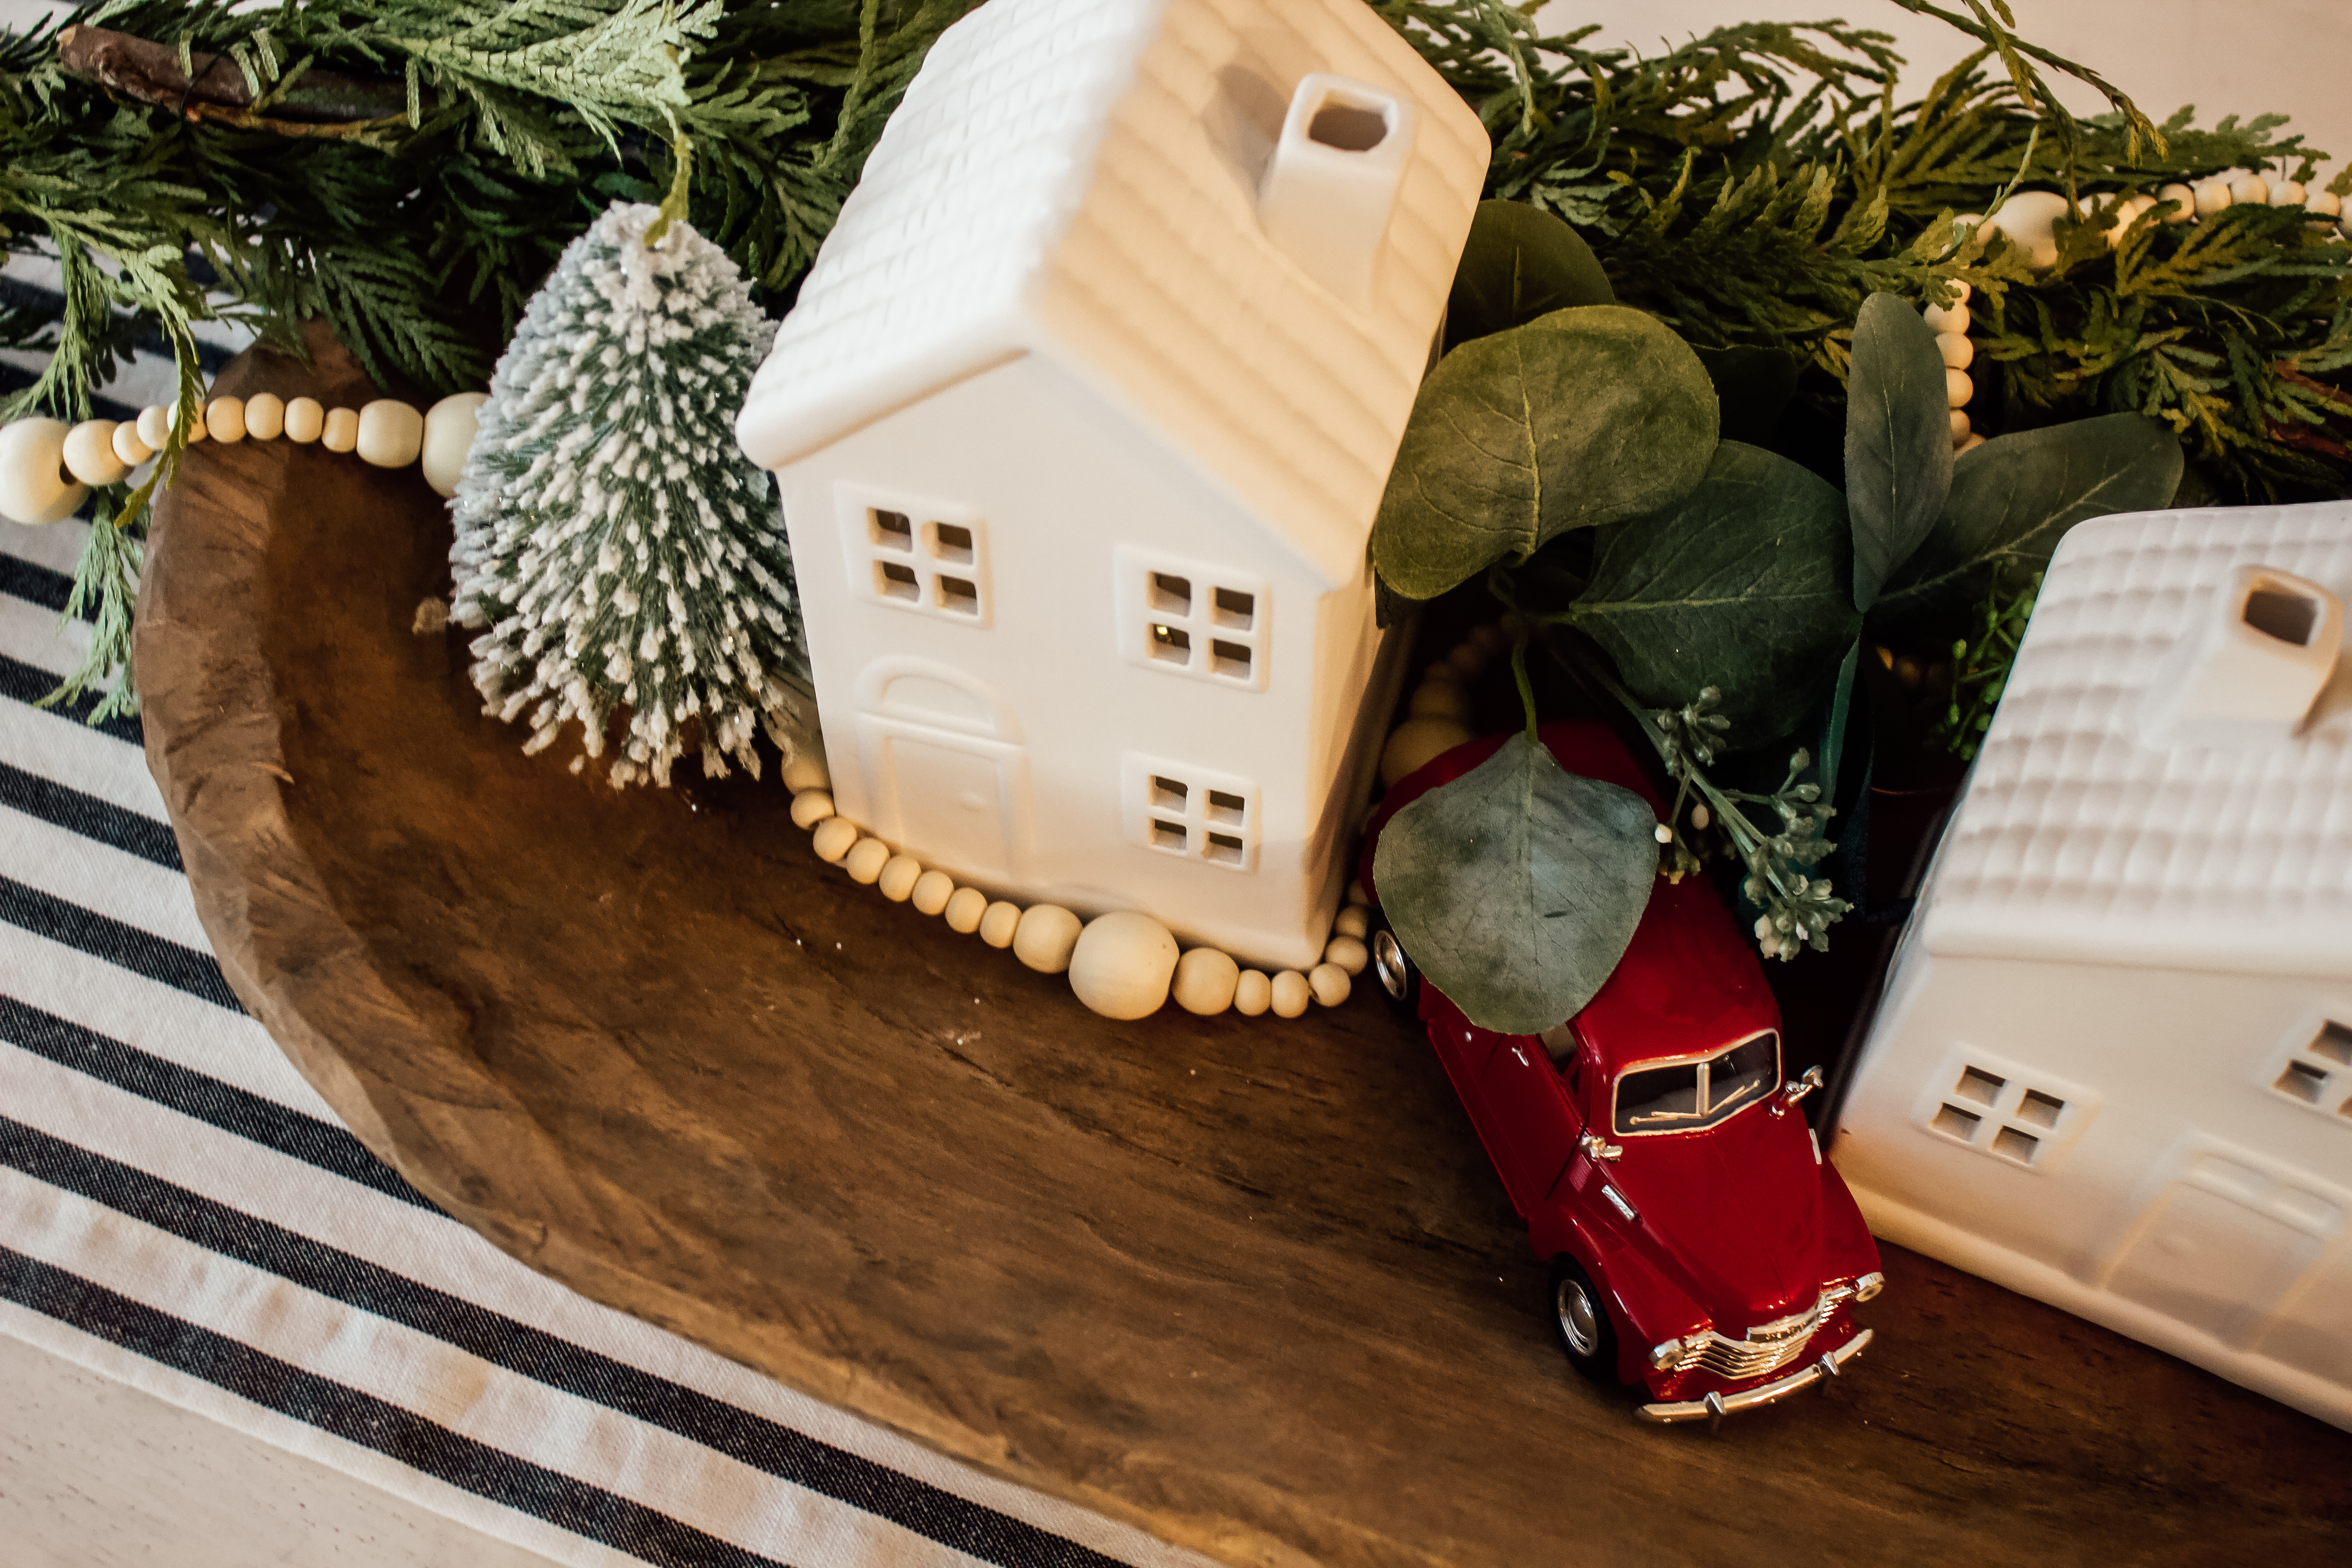 Cozy Winter Decor Target Hearth And Hand Bread Bowl Trader Joes